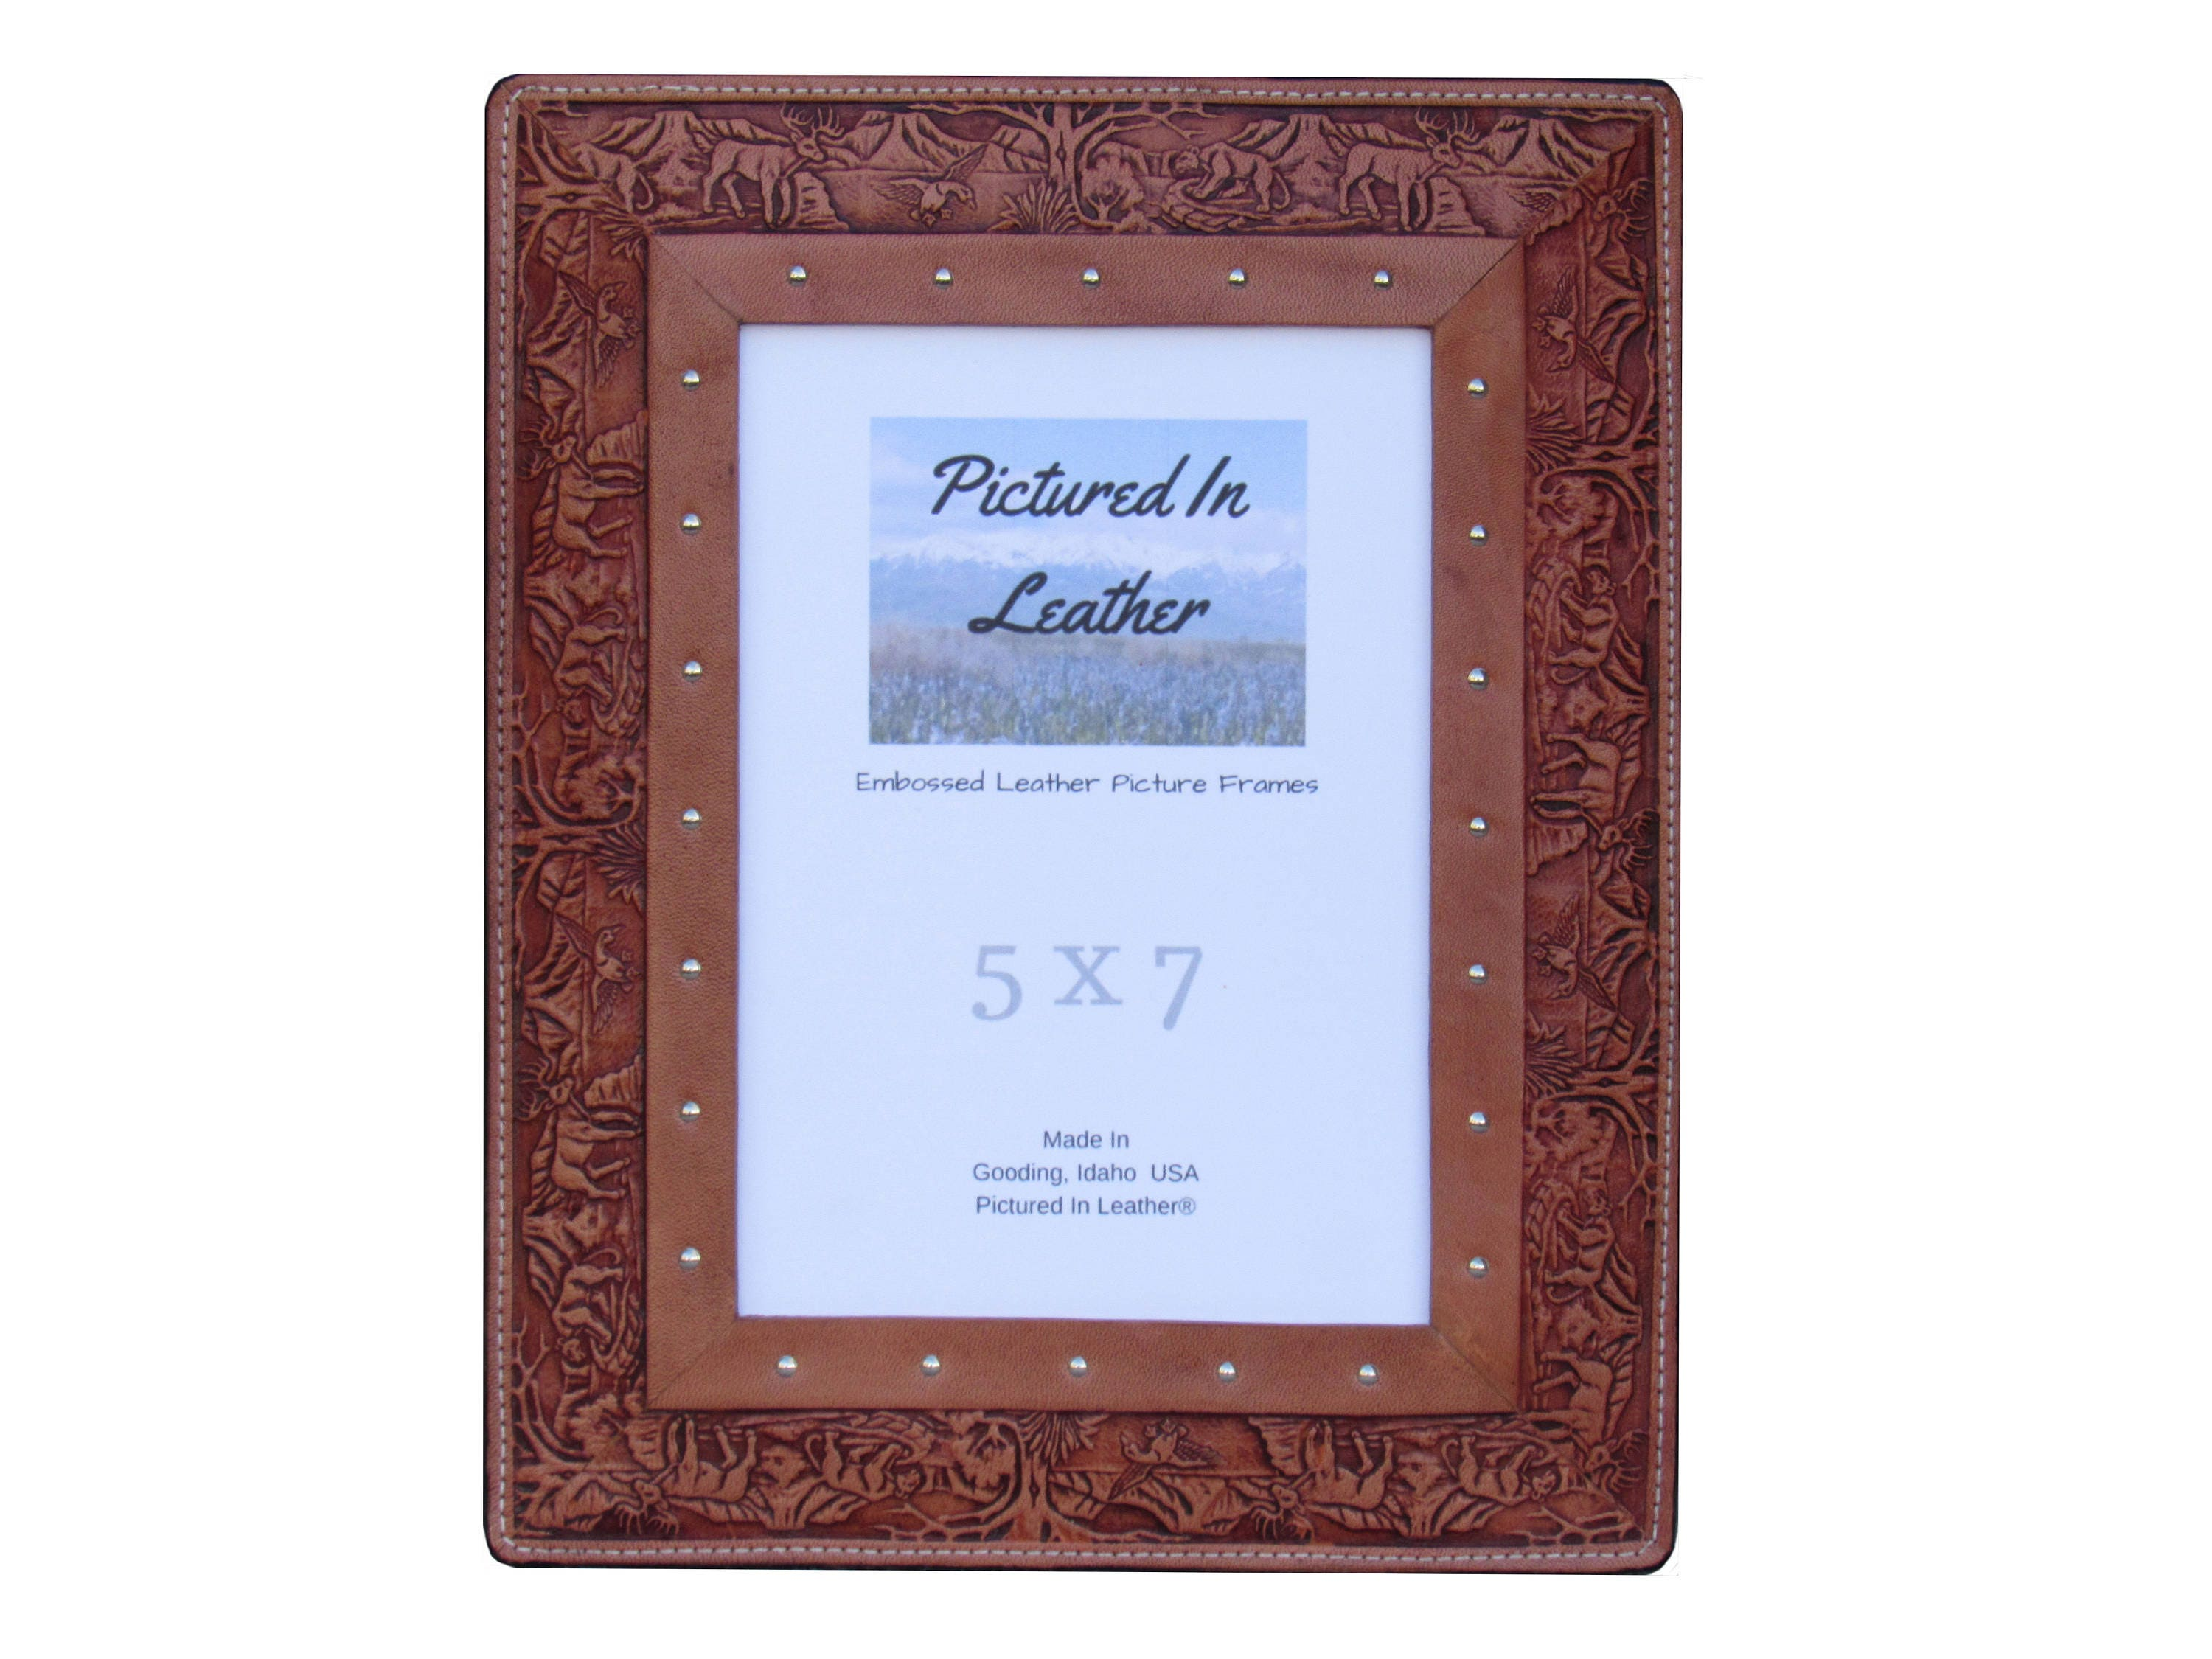 An outdoorsy gift, a lovely leather picture frame, 5x7, embossed ...